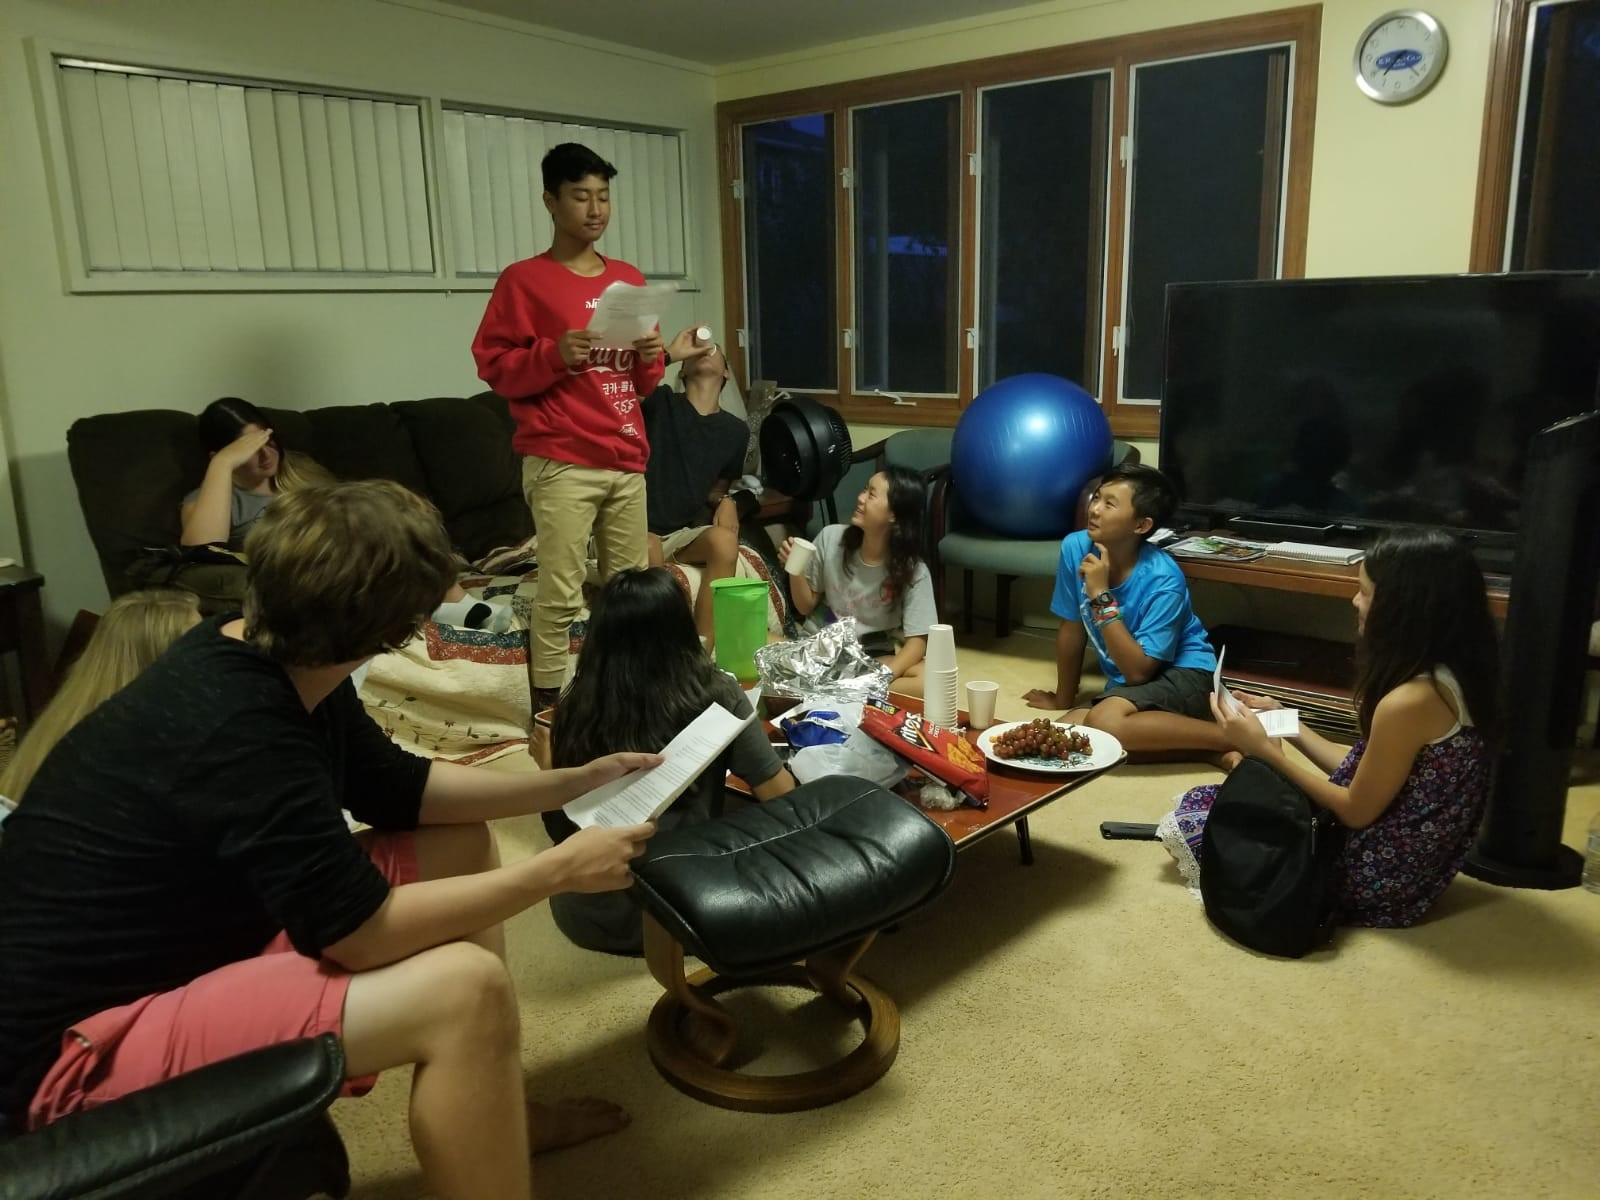 Maunawili Small Group - Every Wednesday | 6p- 7:30p | Lee's House562 Ulukou St. Kailua, HI 95744Every Wednesday join us as we grow in community and relationship with God.Contact Keani Wong for any questions (808)389-3384